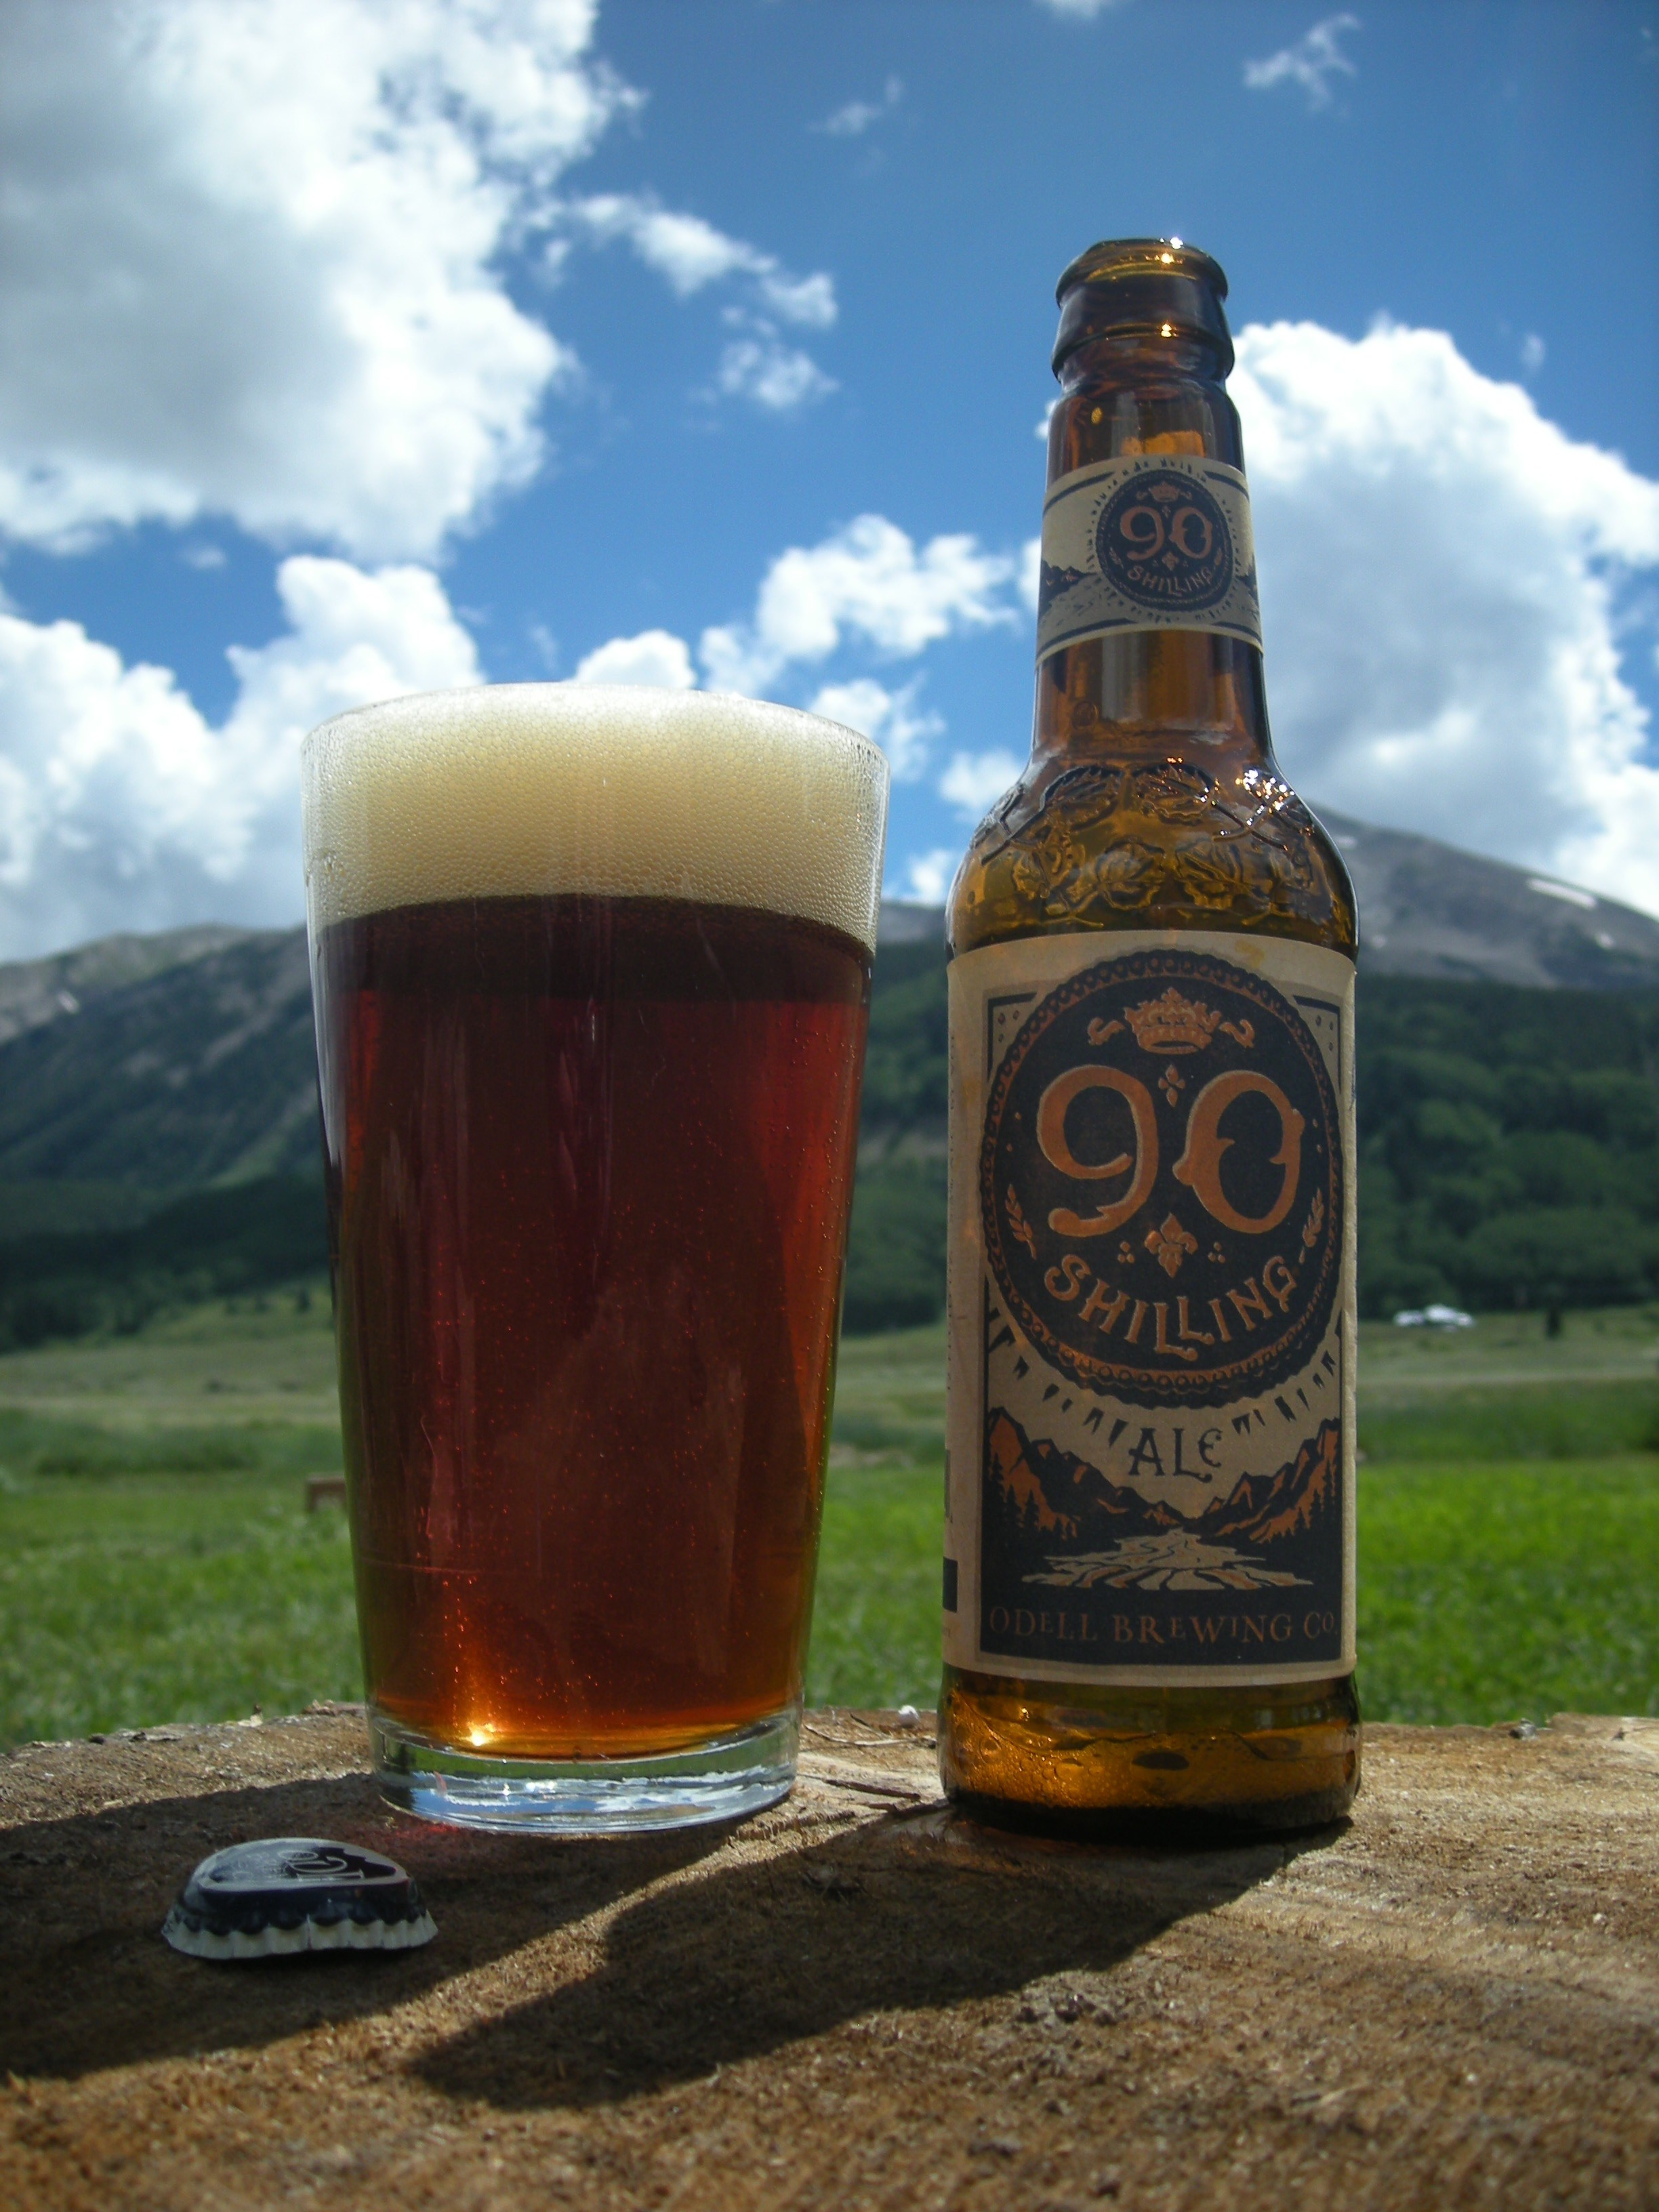 Odell 90 Shilling Scotch Ale